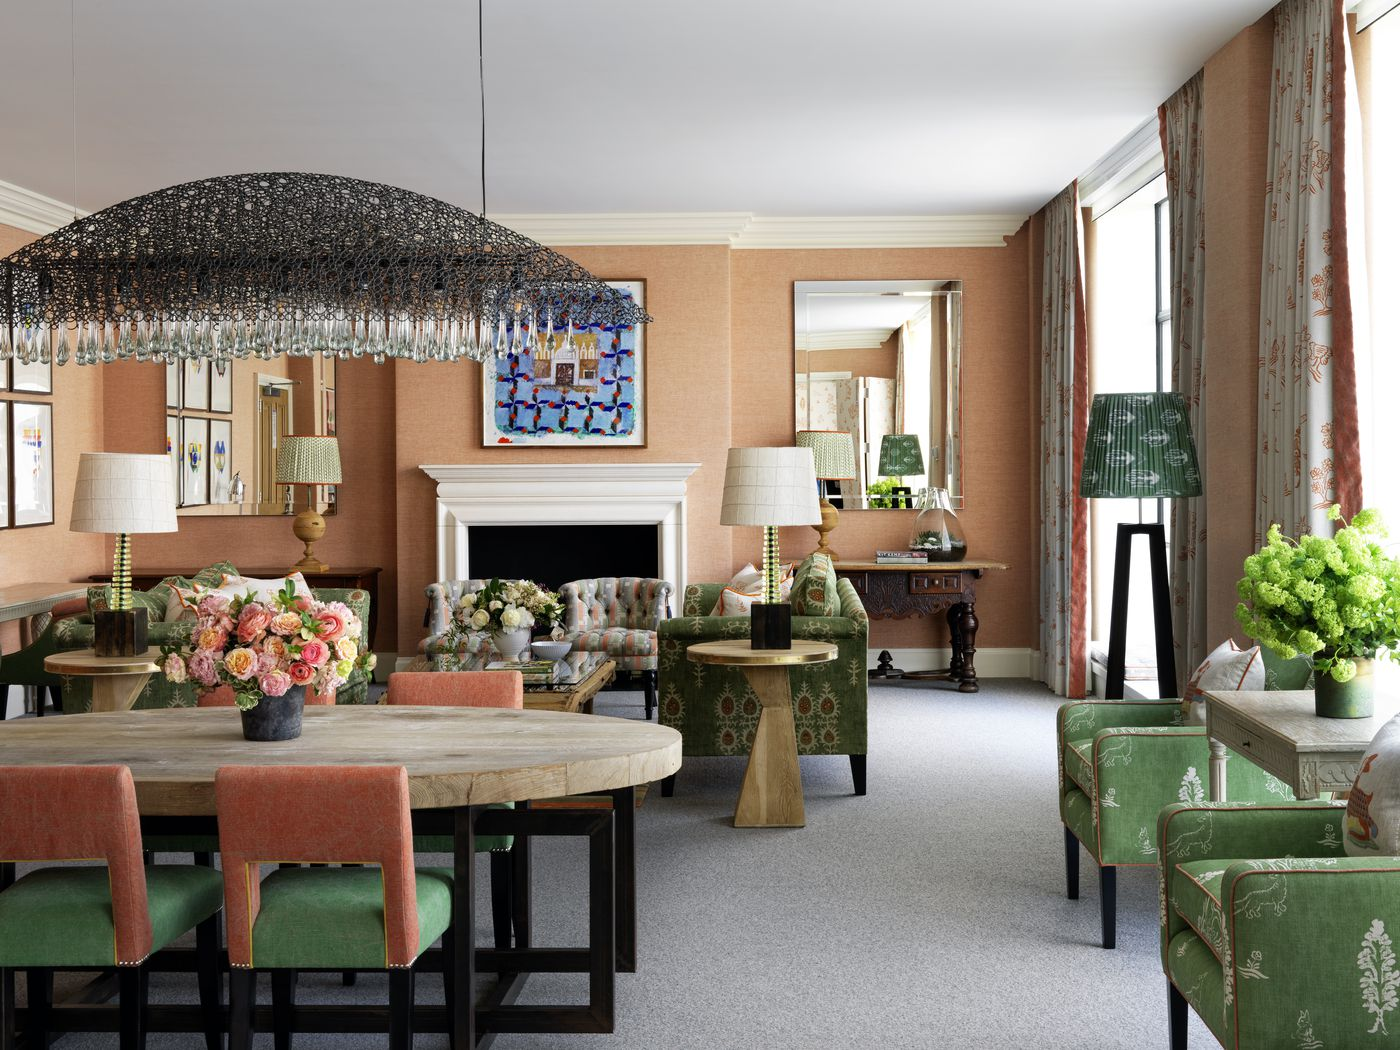 Best Hotels In New York City For Design Lovers Curbed Ny